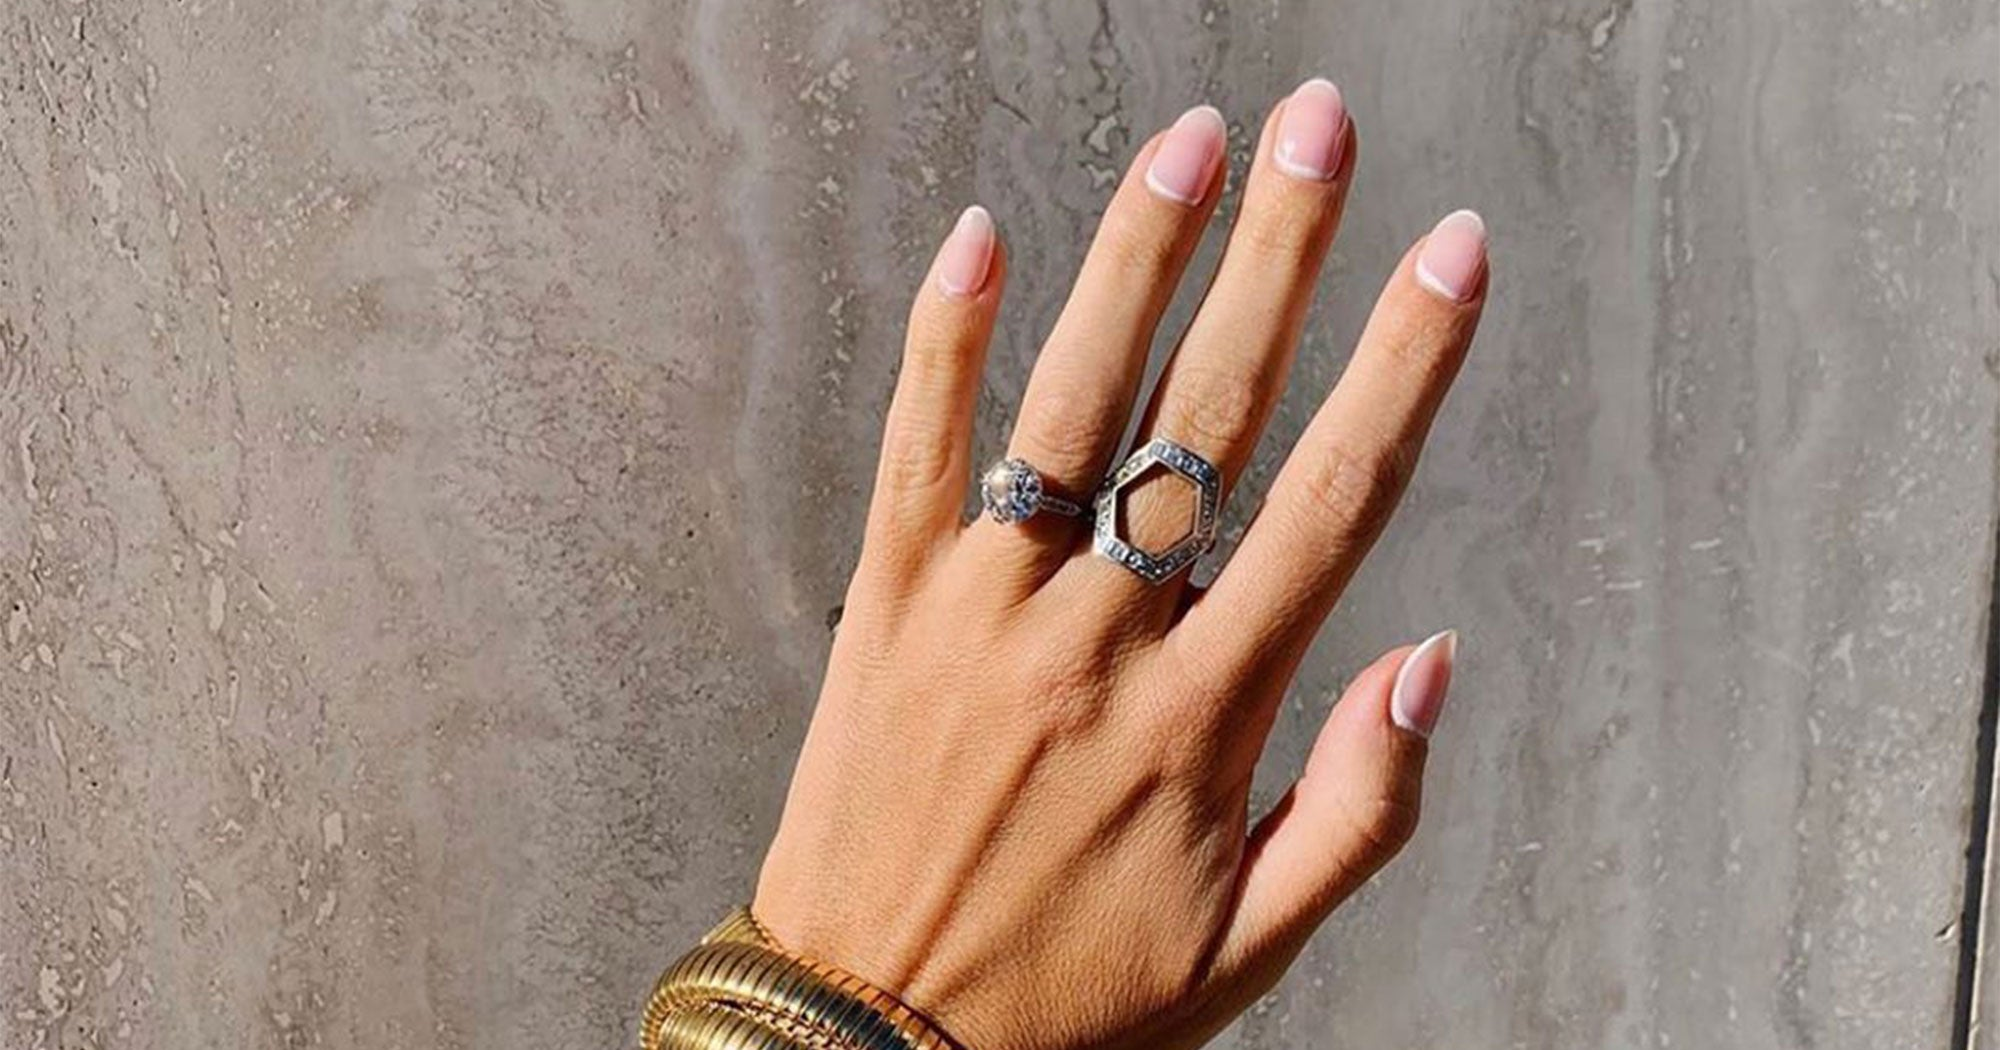 The Biggest Nail-Art Trends For Fall 2019 Have Arrived